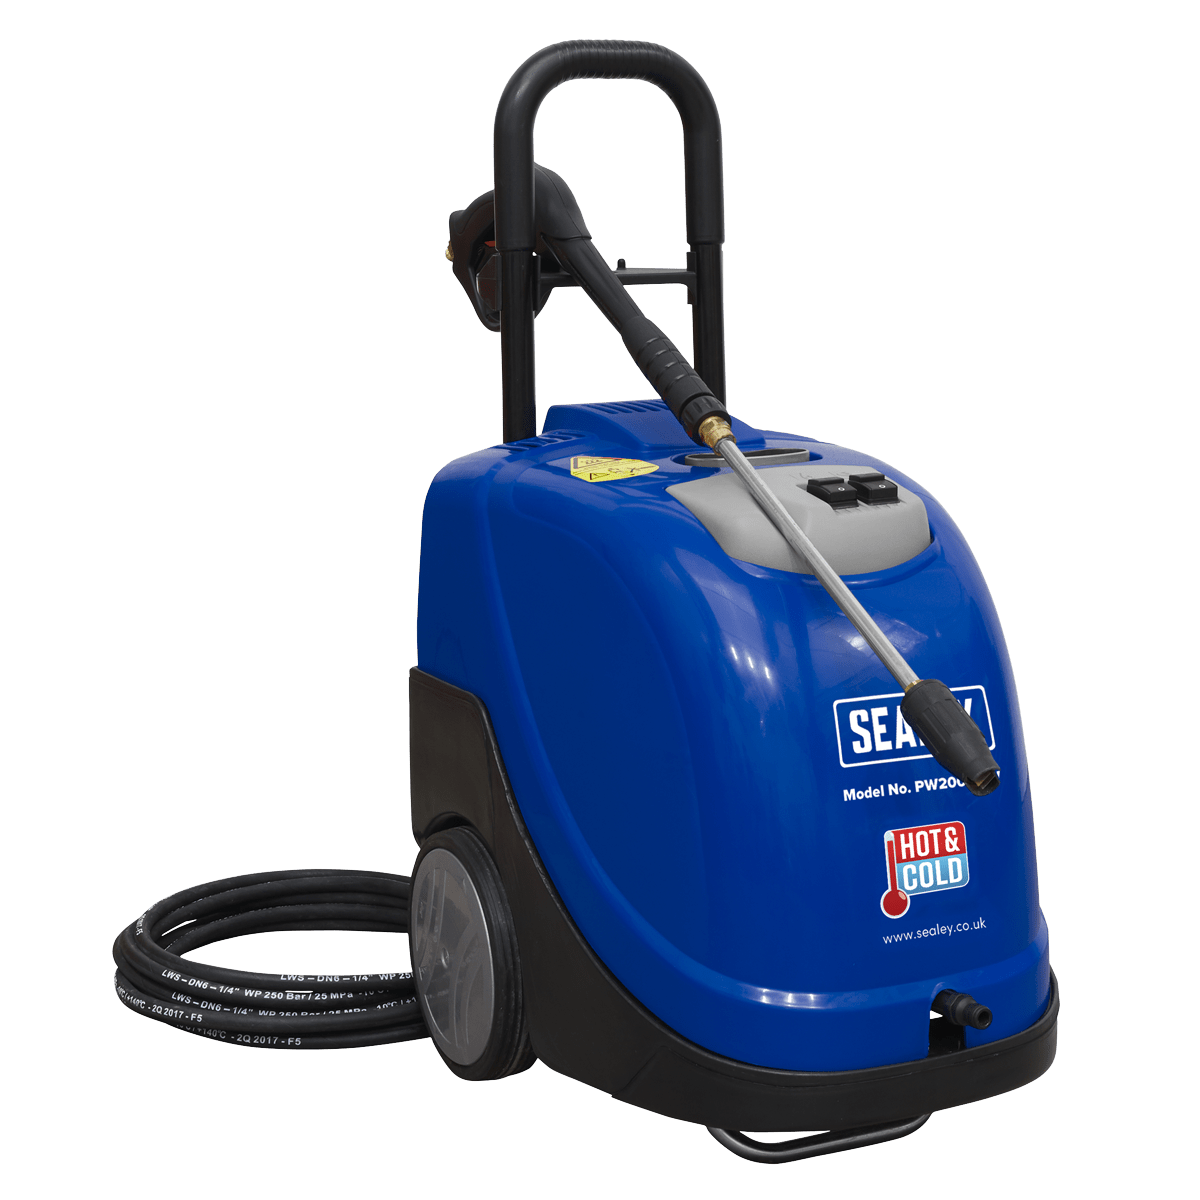 Sealey Hot Water Pressure Washer 135bar 230V PW2000HW   Fitted with a heavy-duty, upgraded induction electric motor with a diesel water heater.   toolforce.ie